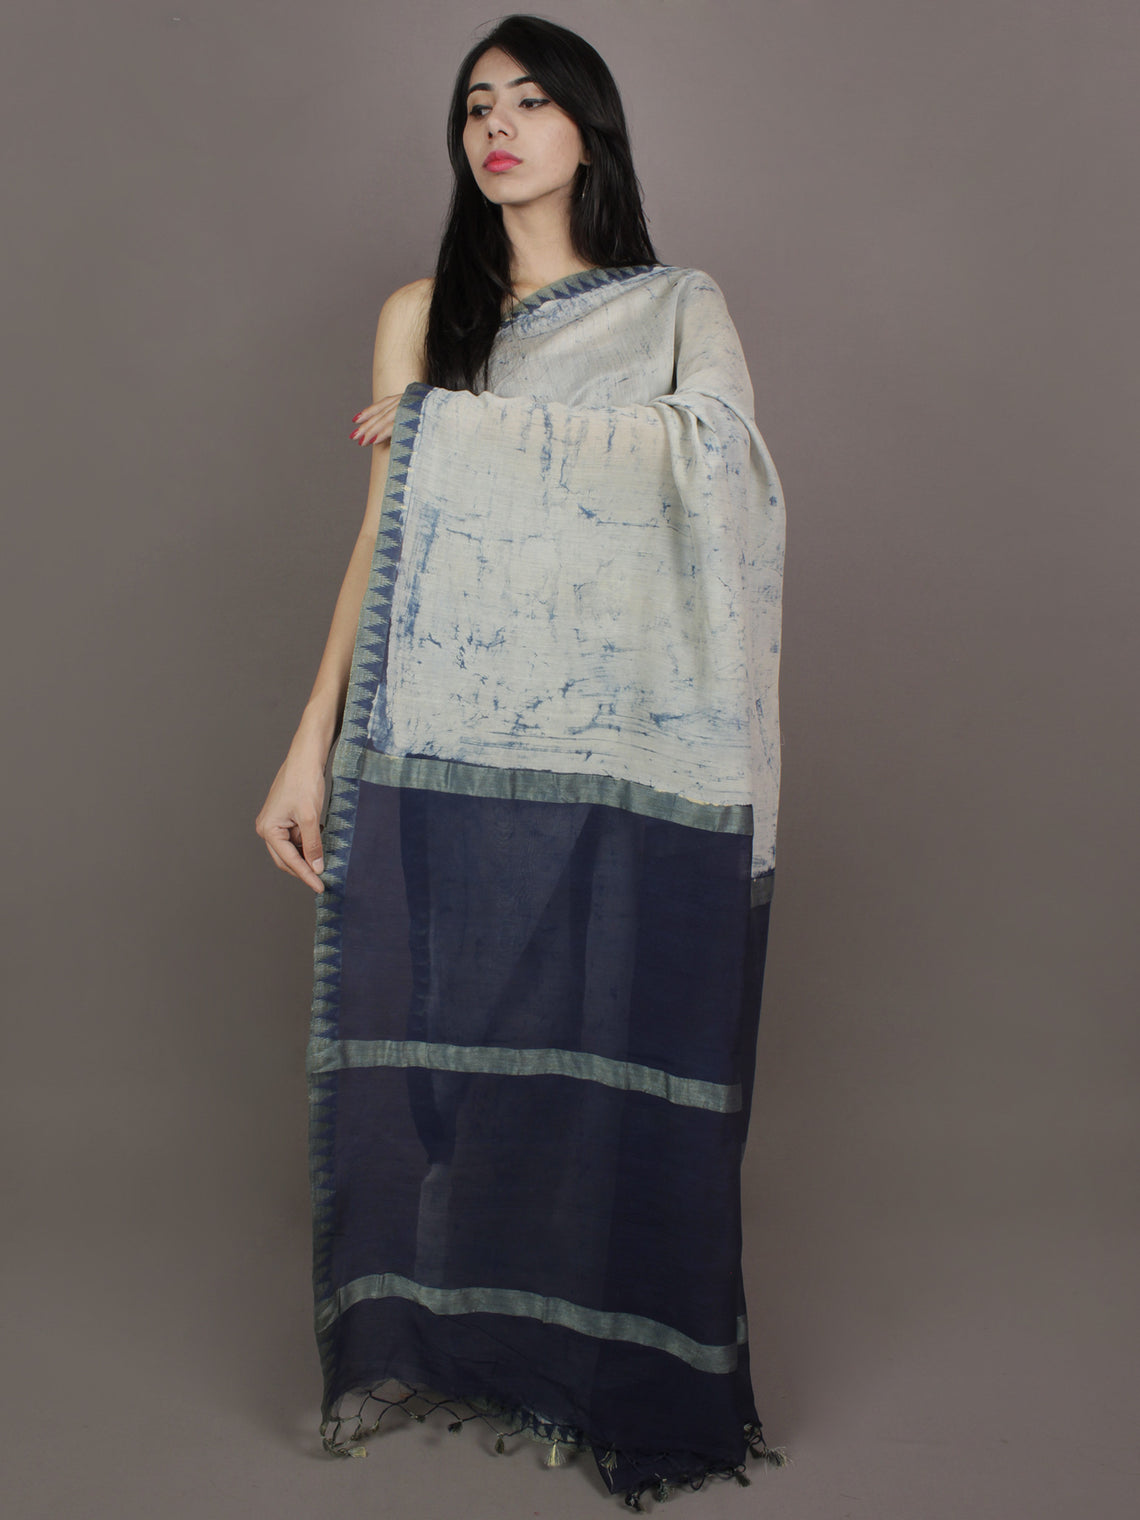 Indigo Ivory Hand Painted in Natural Colors Chanderi Saree With Ghicha Border - S031701147